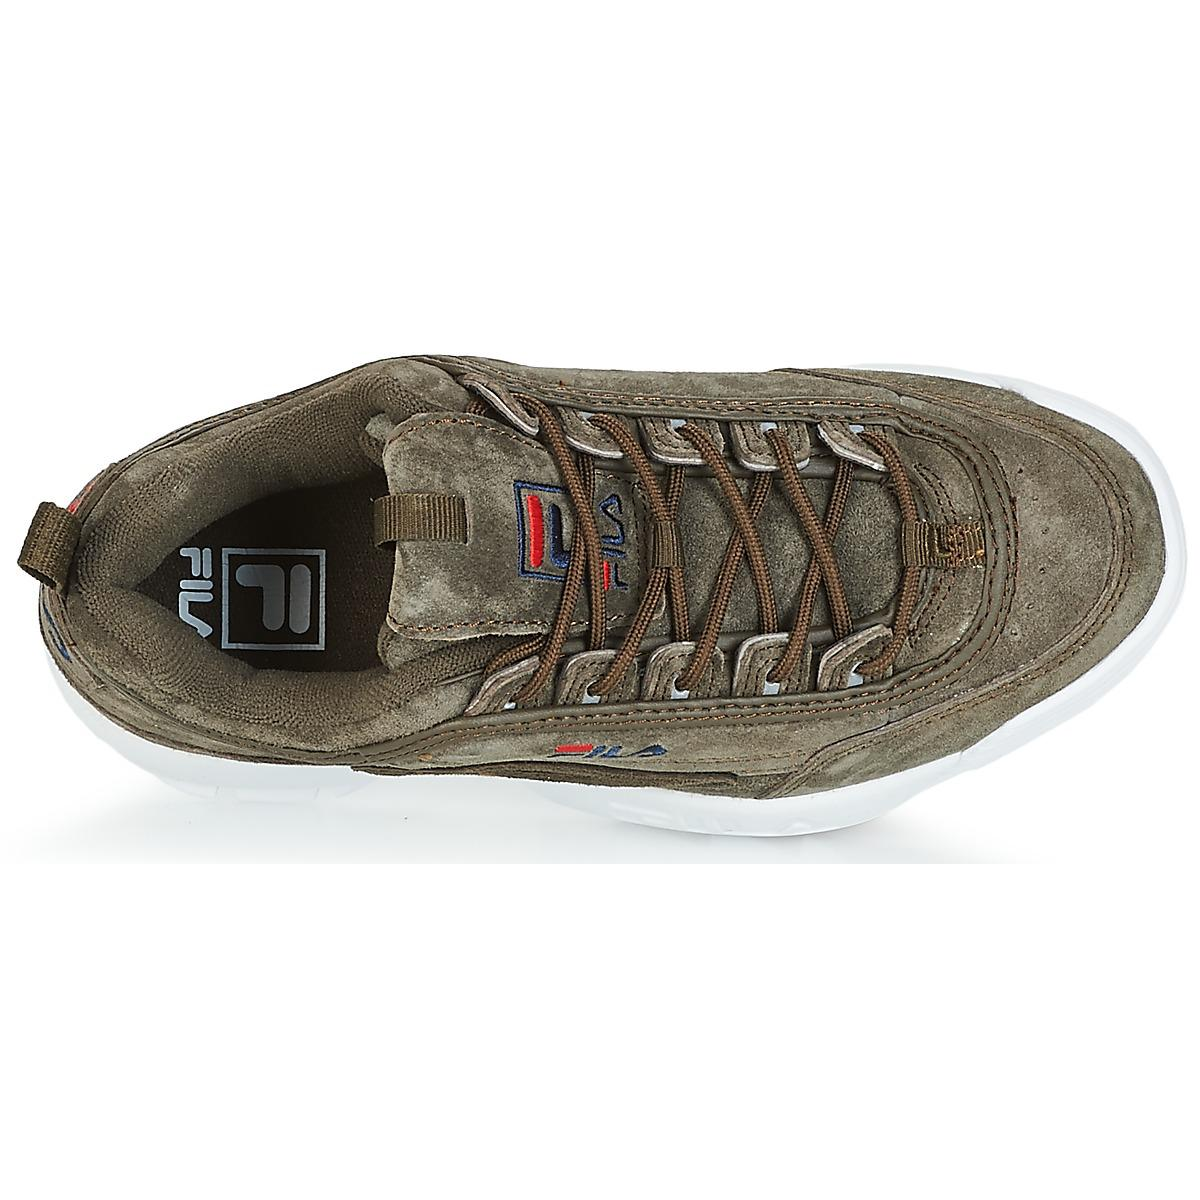 Fila Disruptor S Low Wmn Women's Shoes (high-top Trainers) In Brown